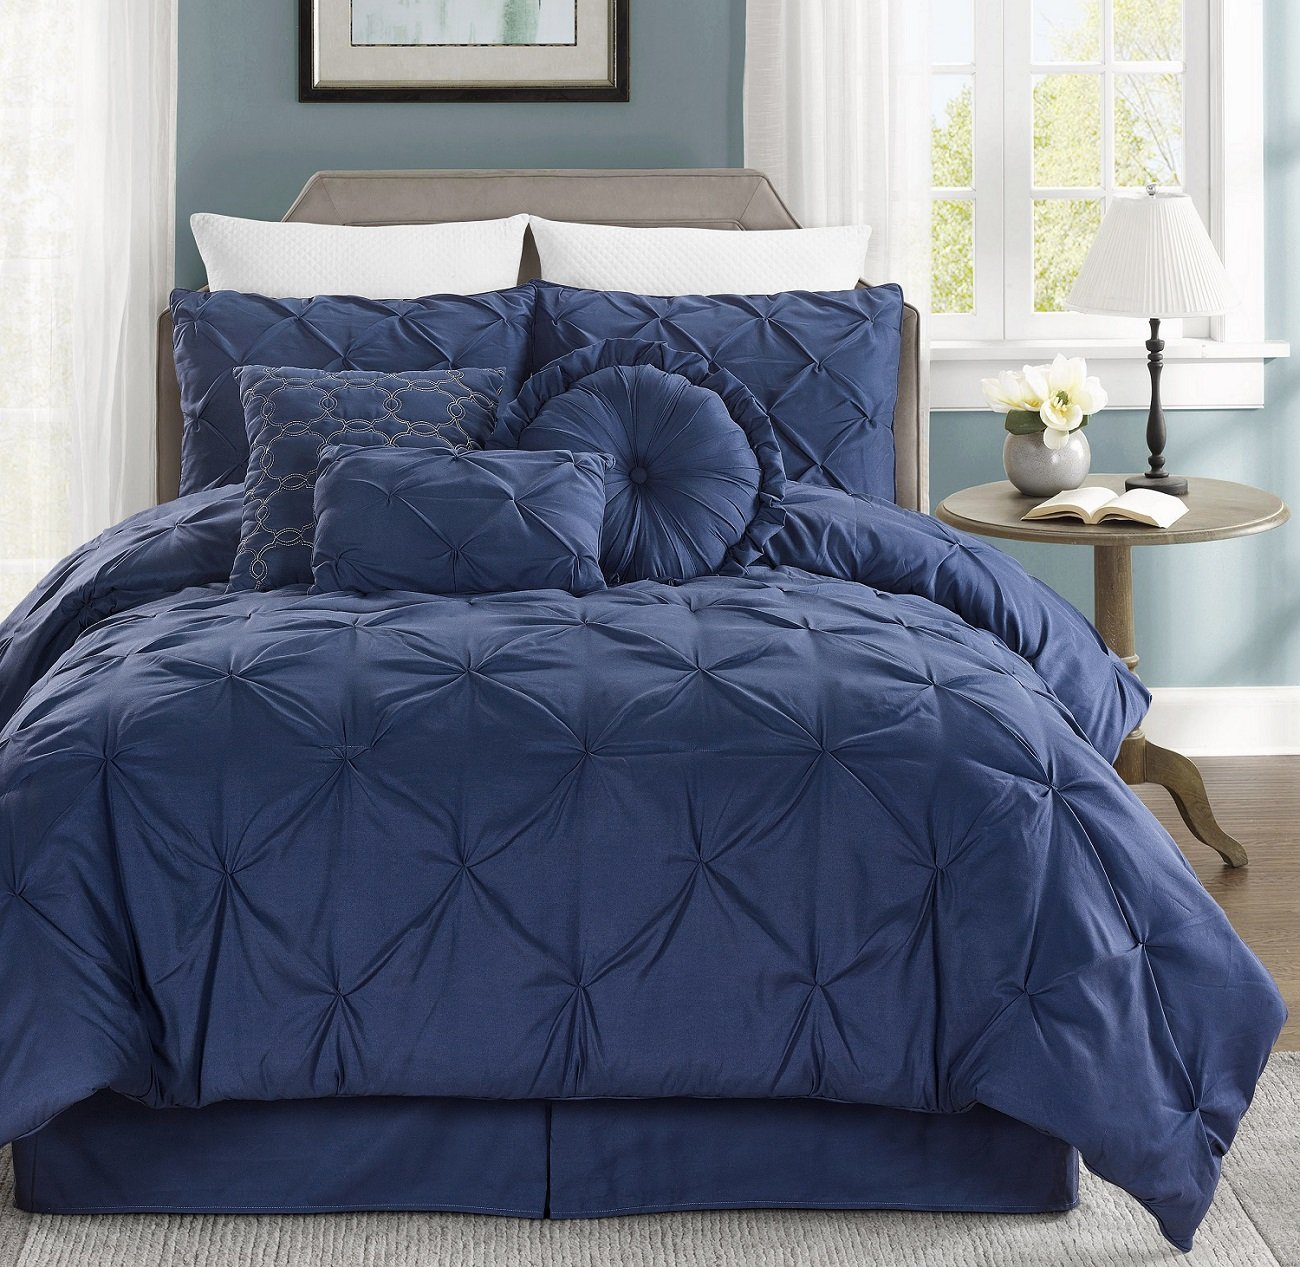 Chezmoi Collection Sydney 7-piece Pintuck Bedding Comforter Set Queen, Navy